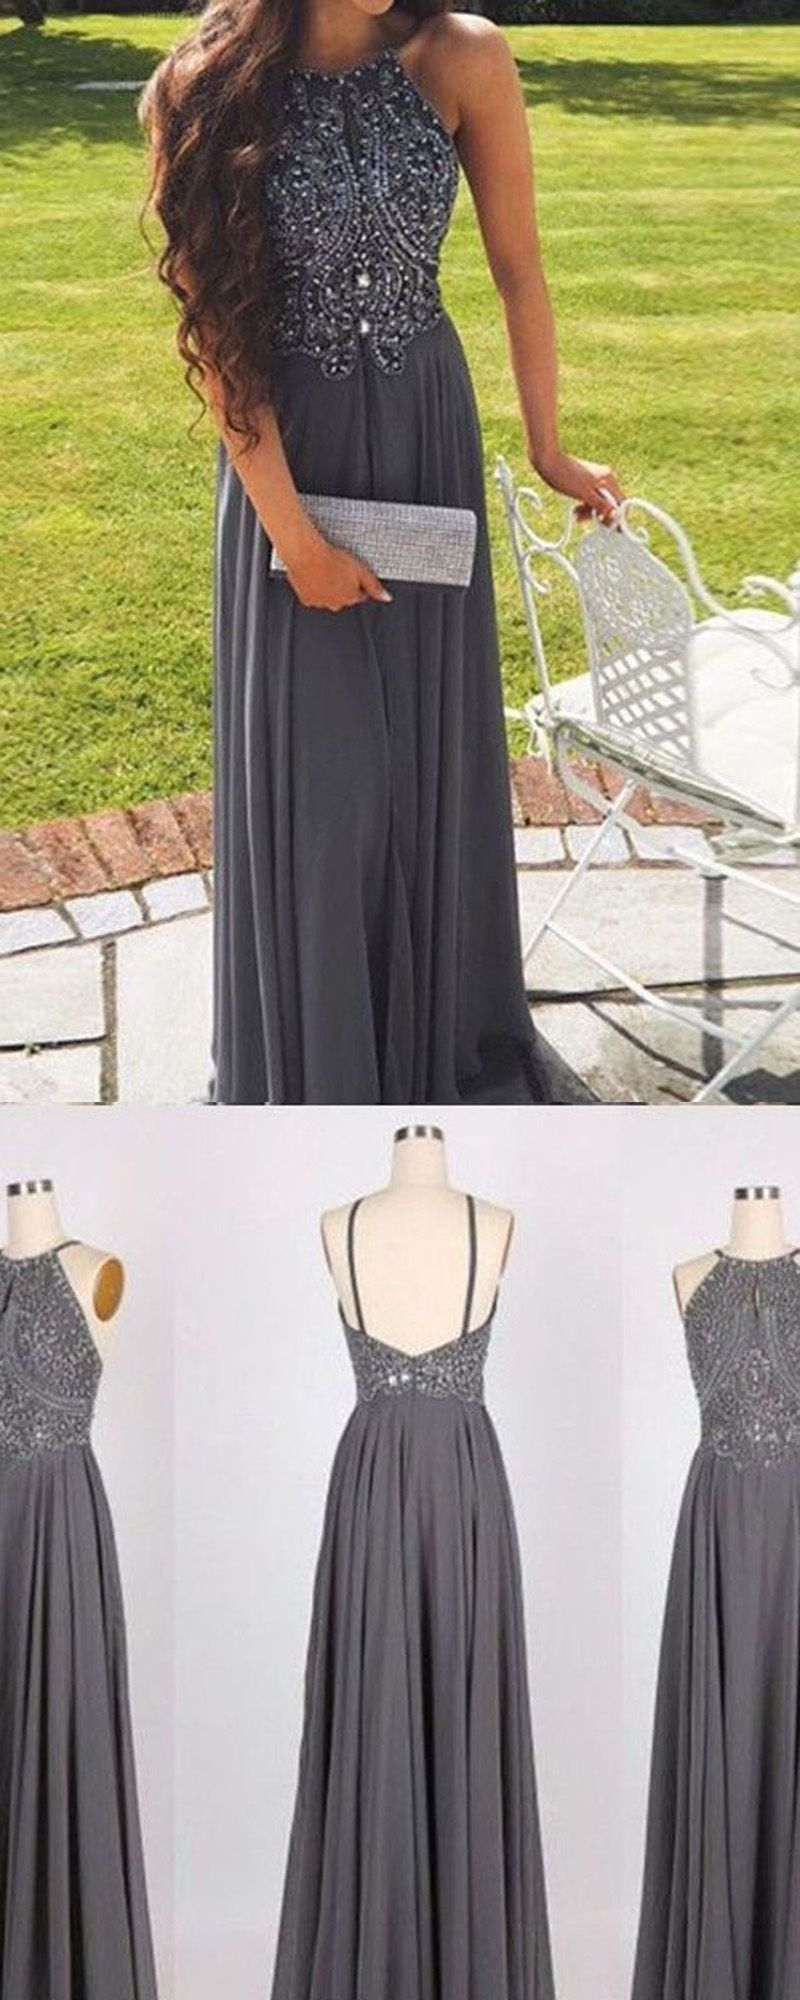 Hot selling aline prom dresshalter gray backless prom gownlong